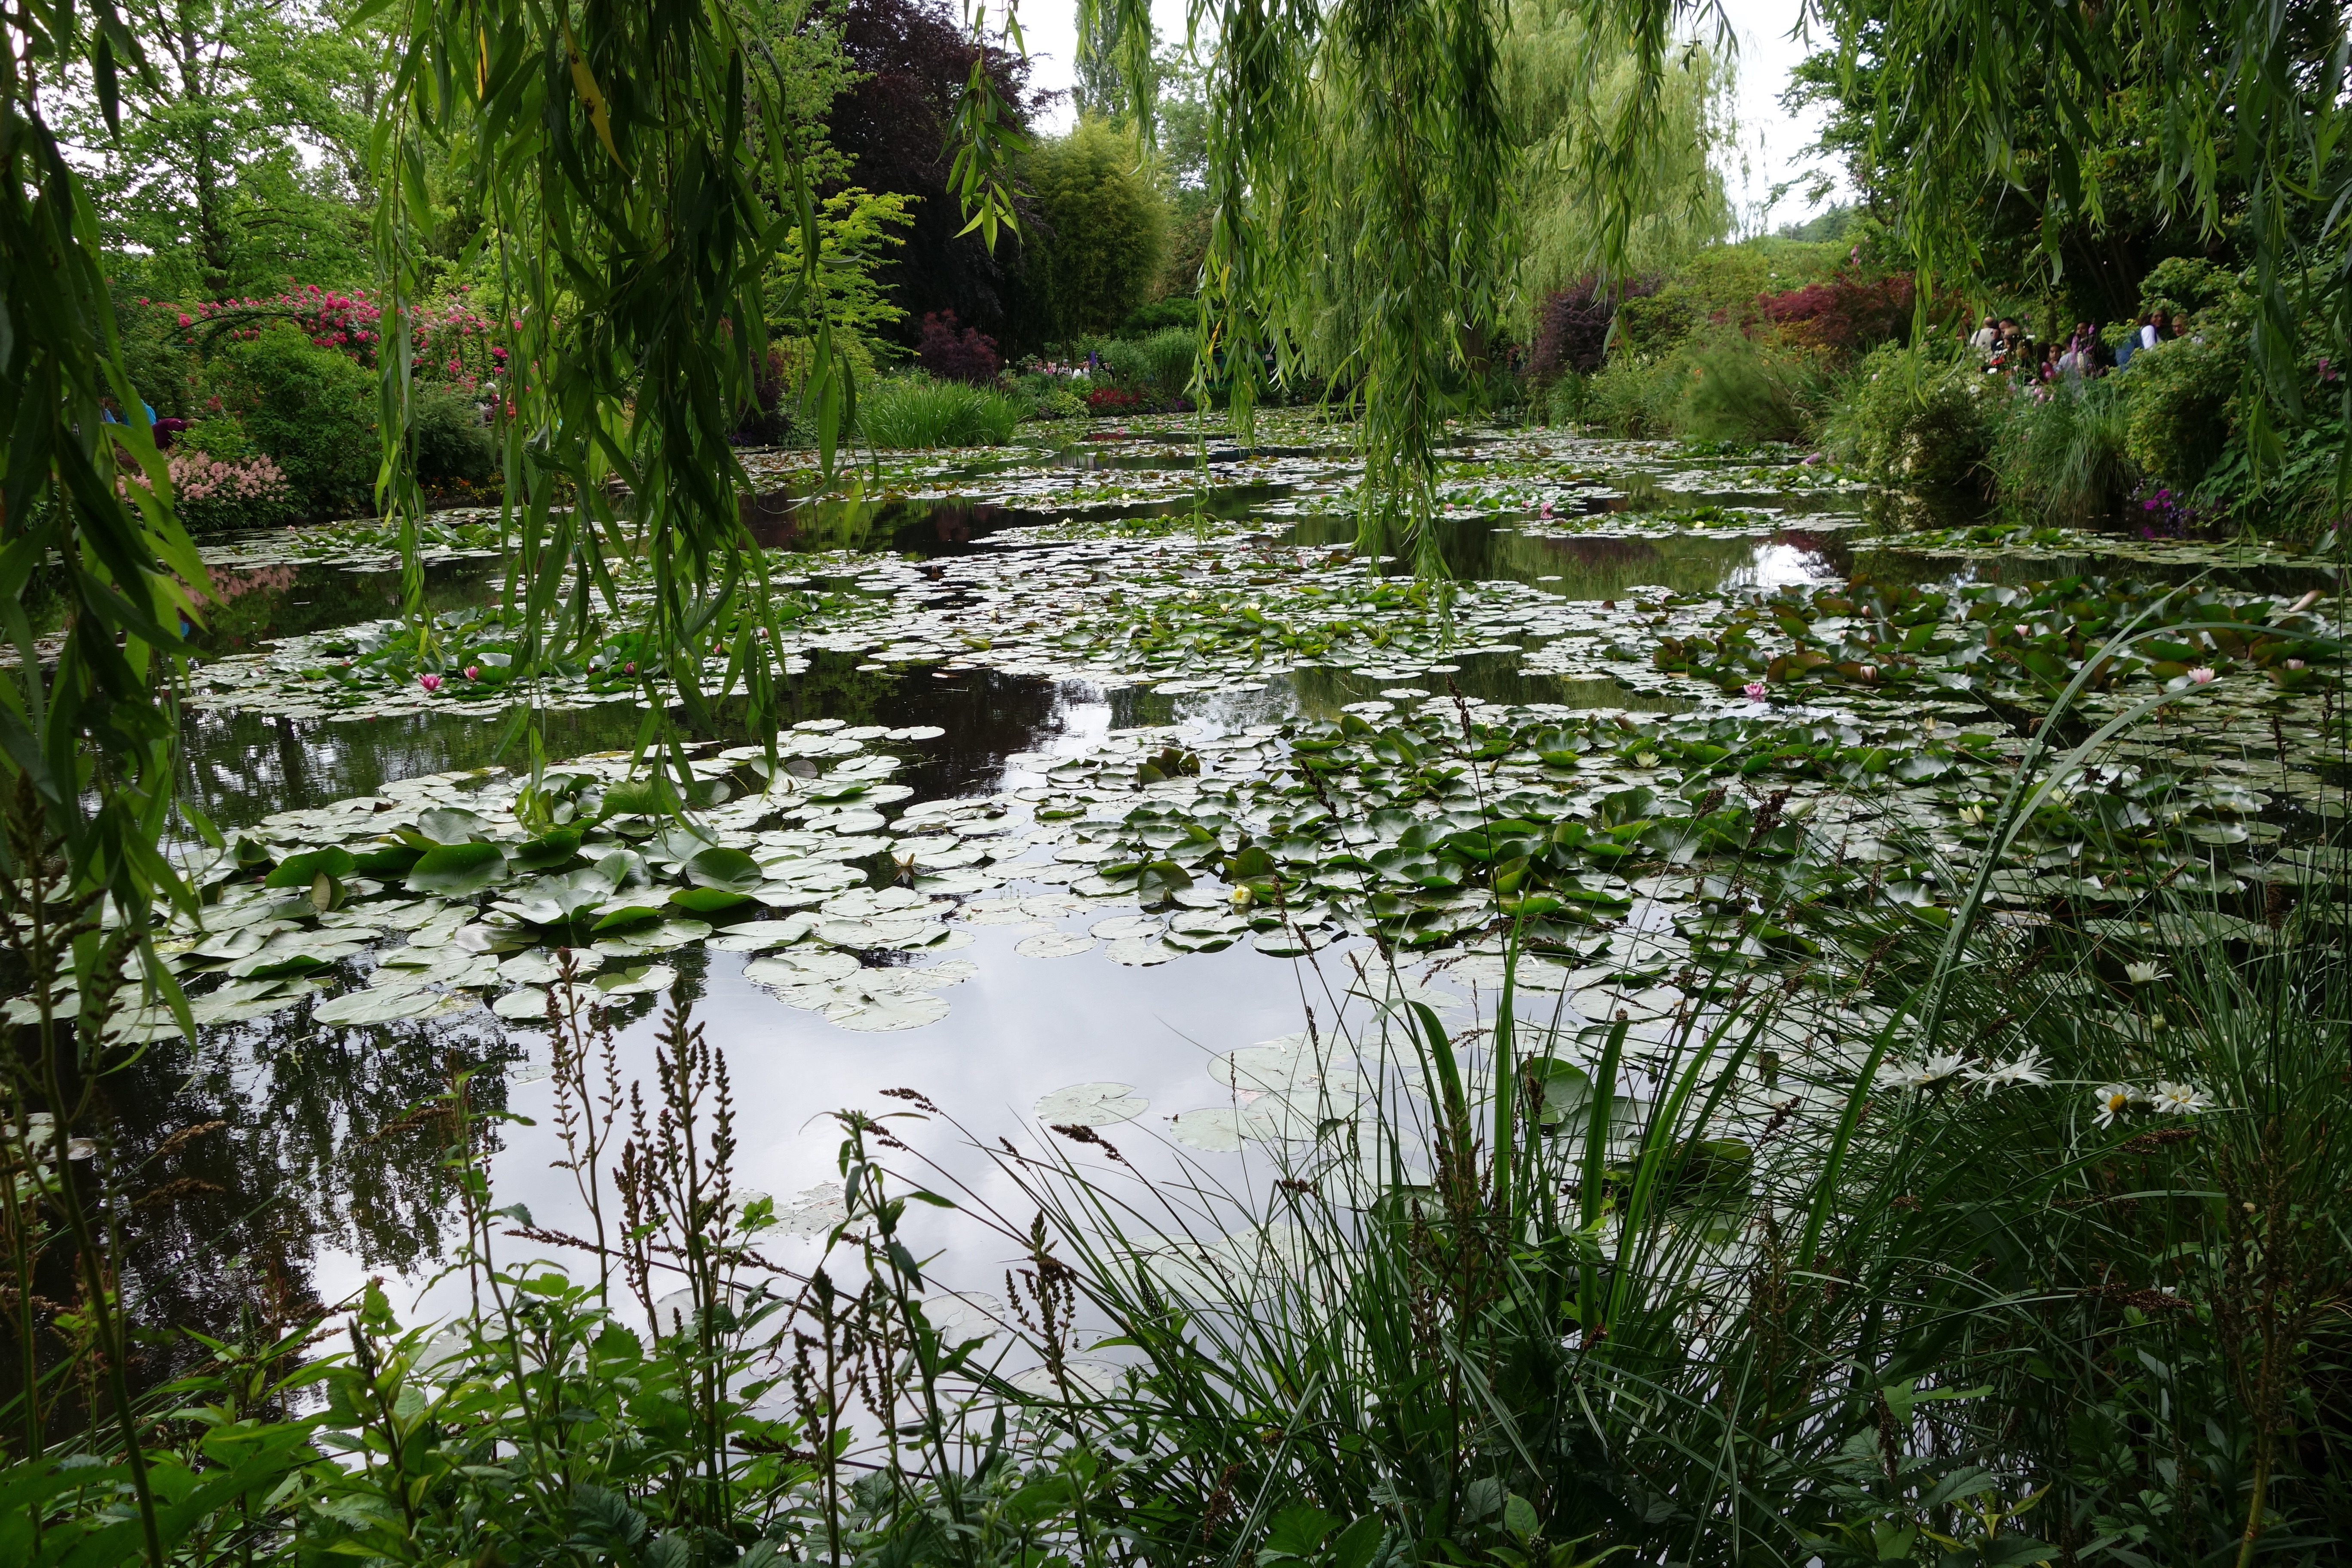 View of Monet's waterlily pond from under the willow tree